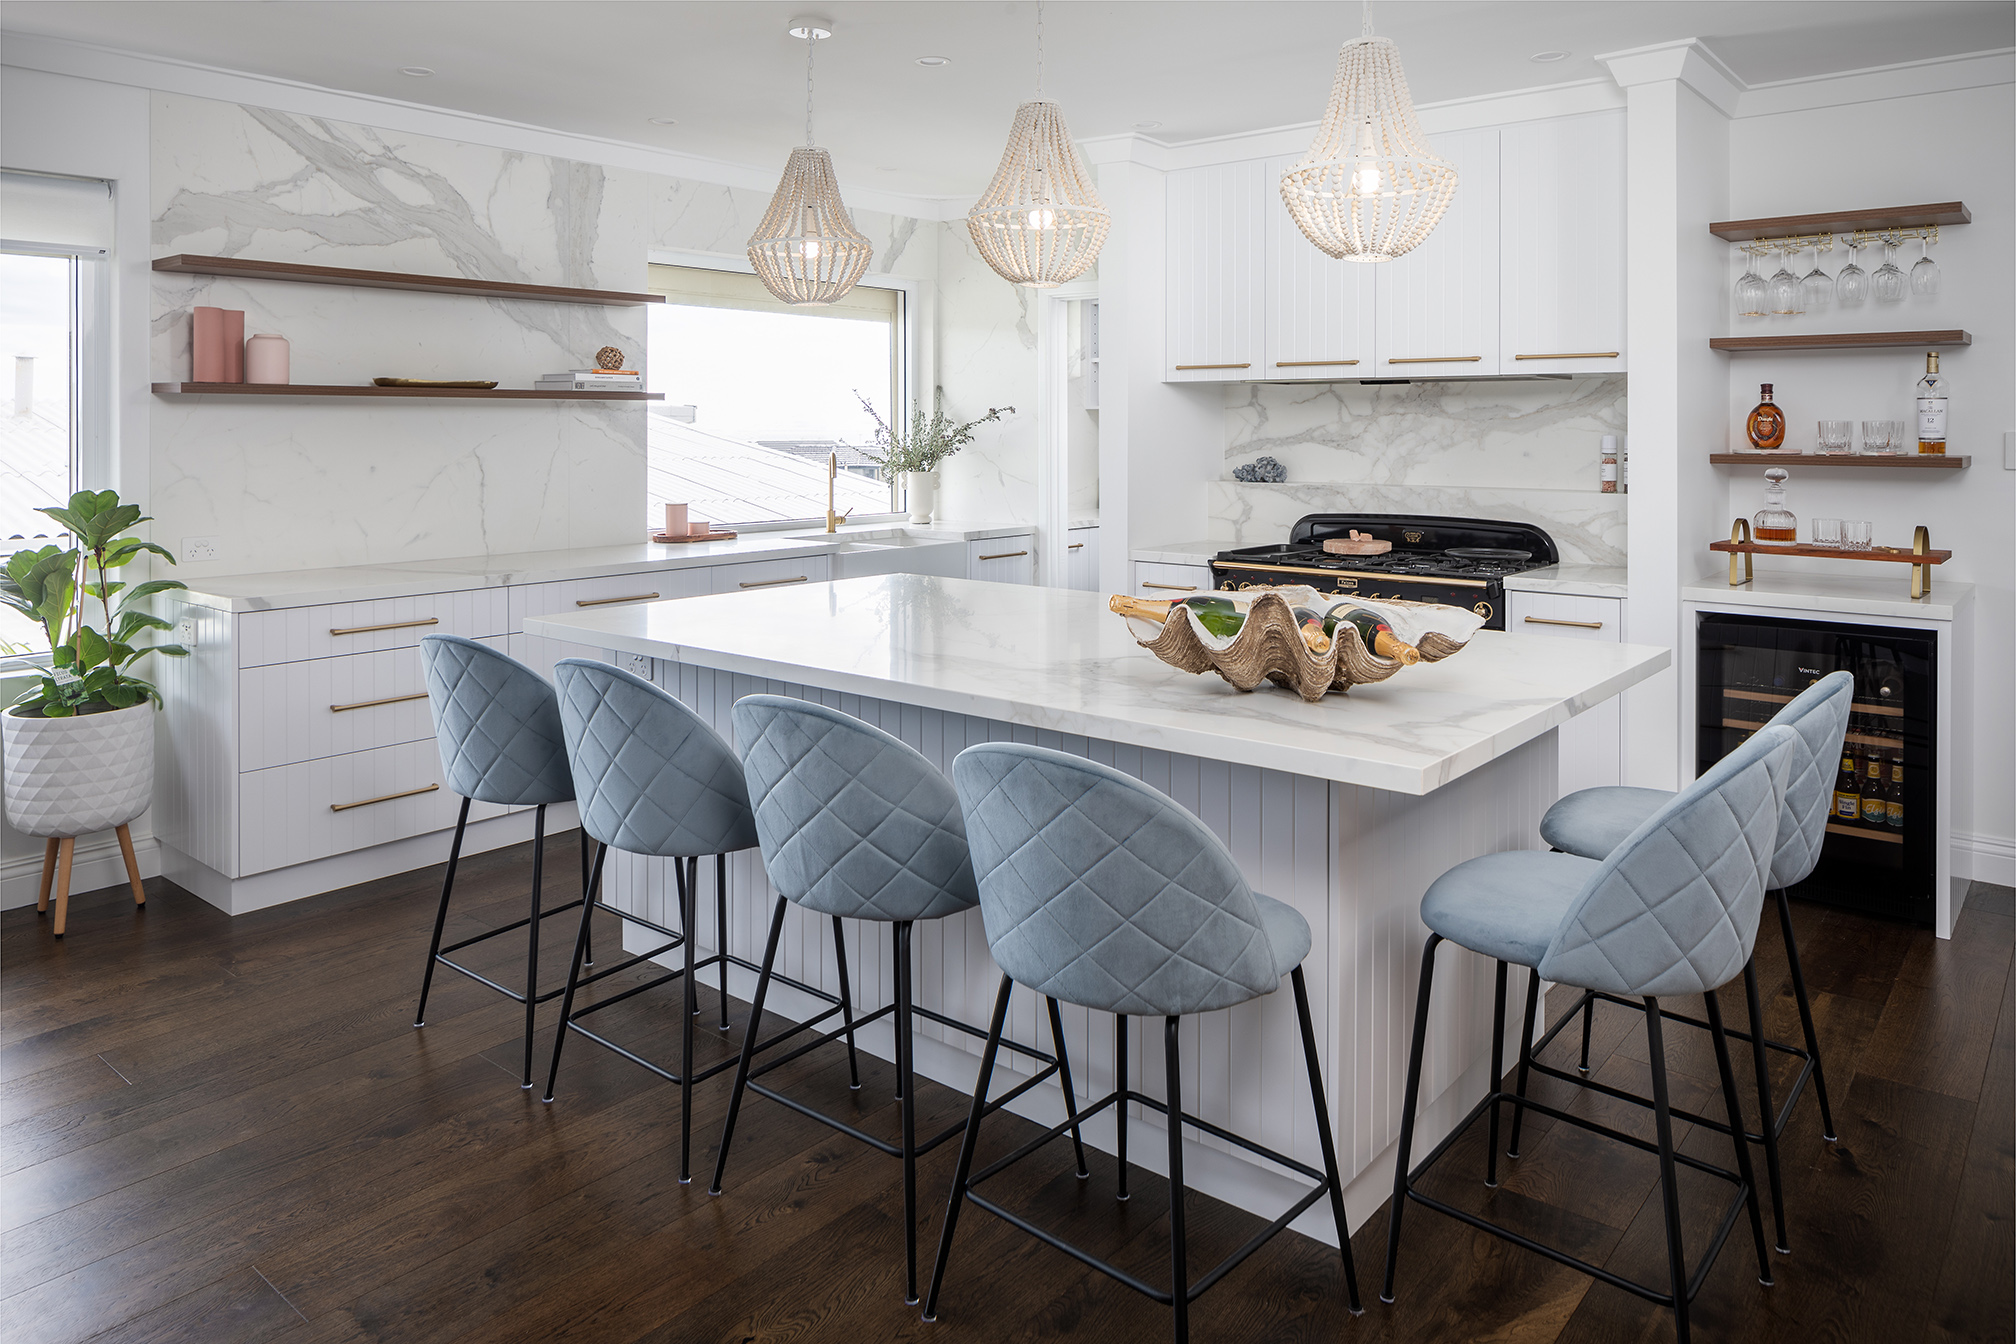 North Beach Coastal Barn Kitchen that is light and bright with dark timber flooring, a feature Falcon oven and white stone look benchtops.